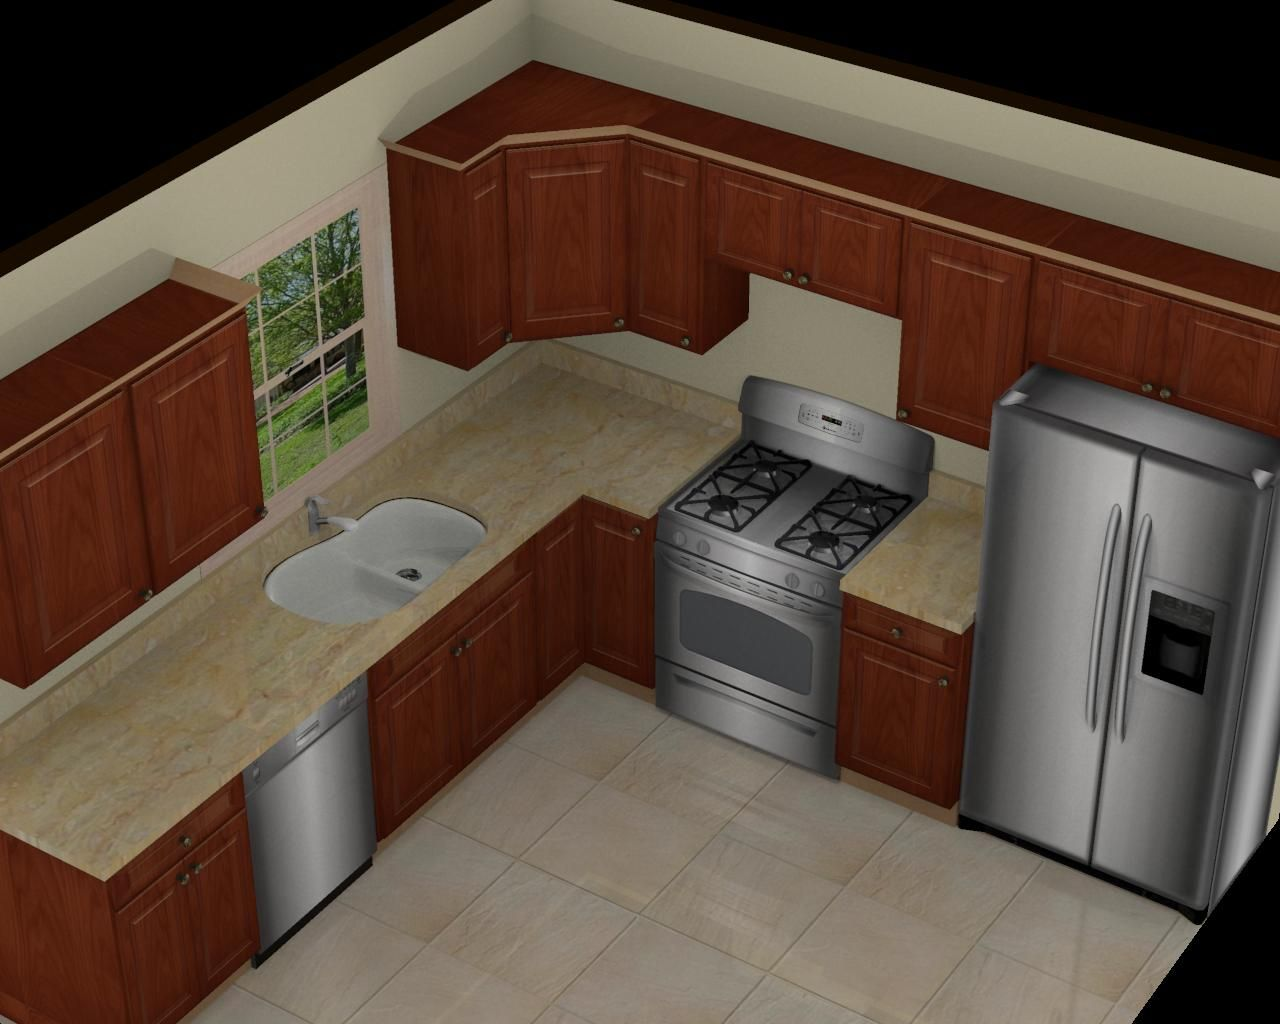 There Are Many Ideas 10 10 Kitchen Design That You Can Do